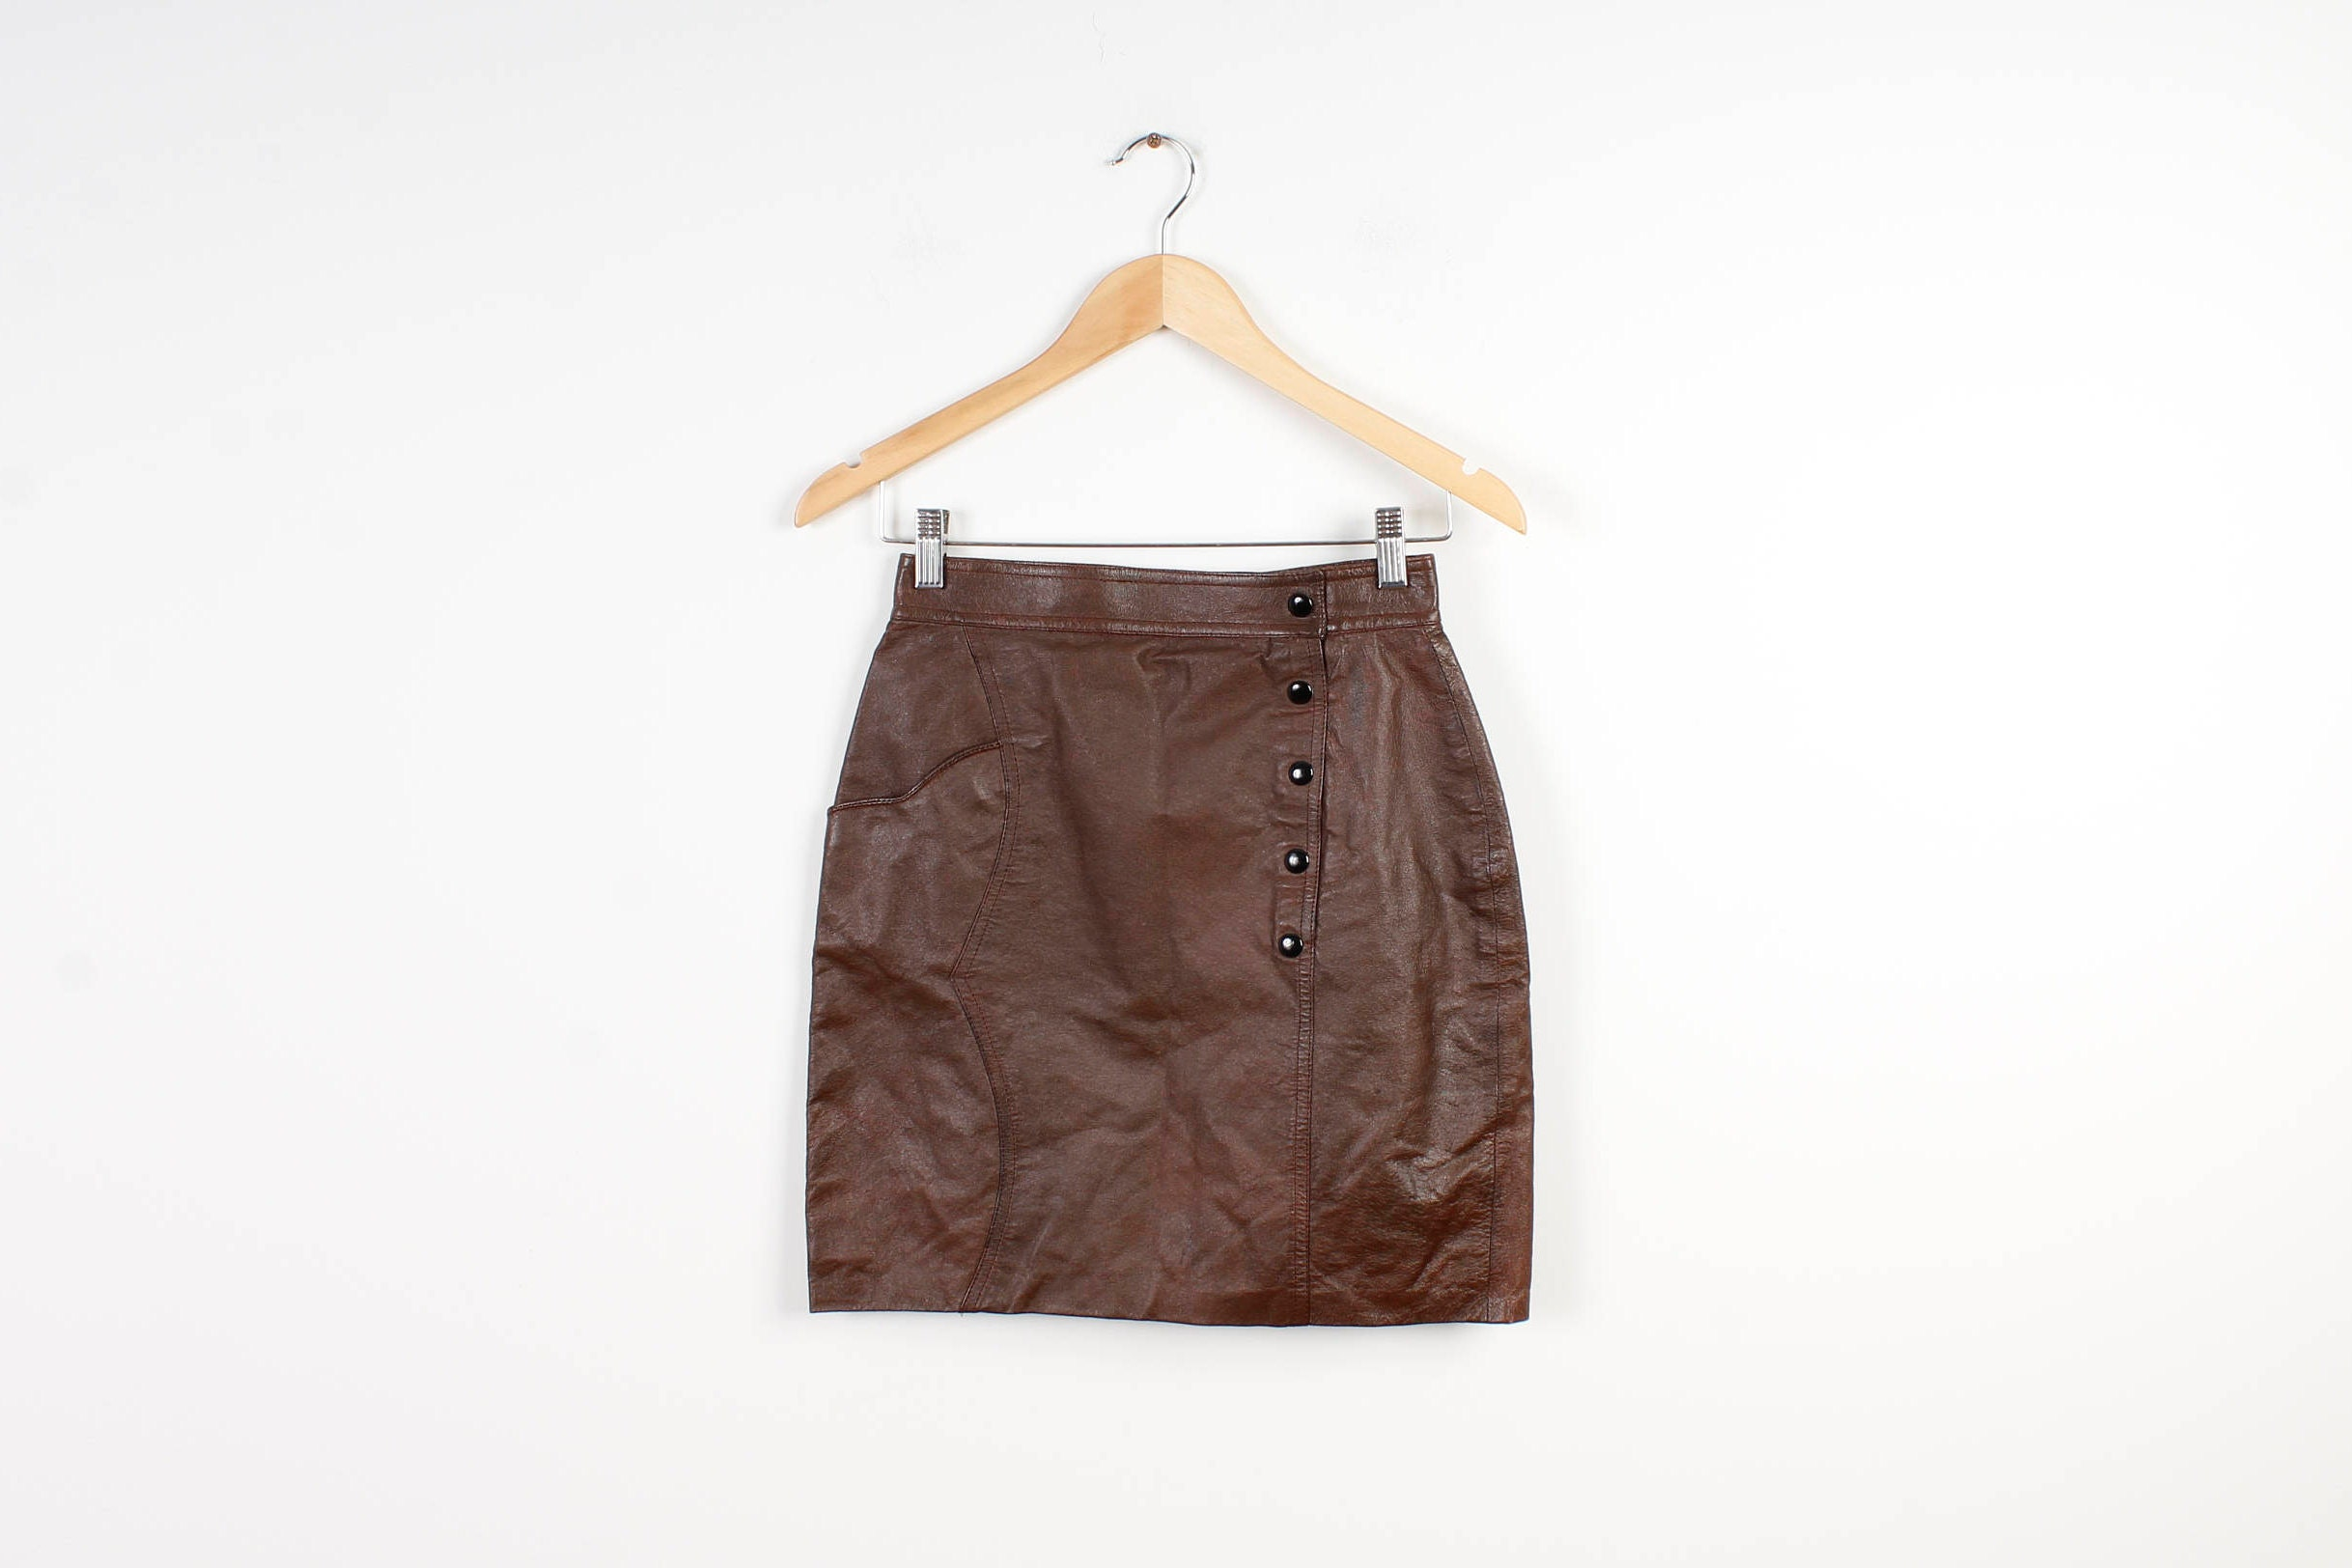 ad79a3fe2 Short Faux Leather Pencil Skirt